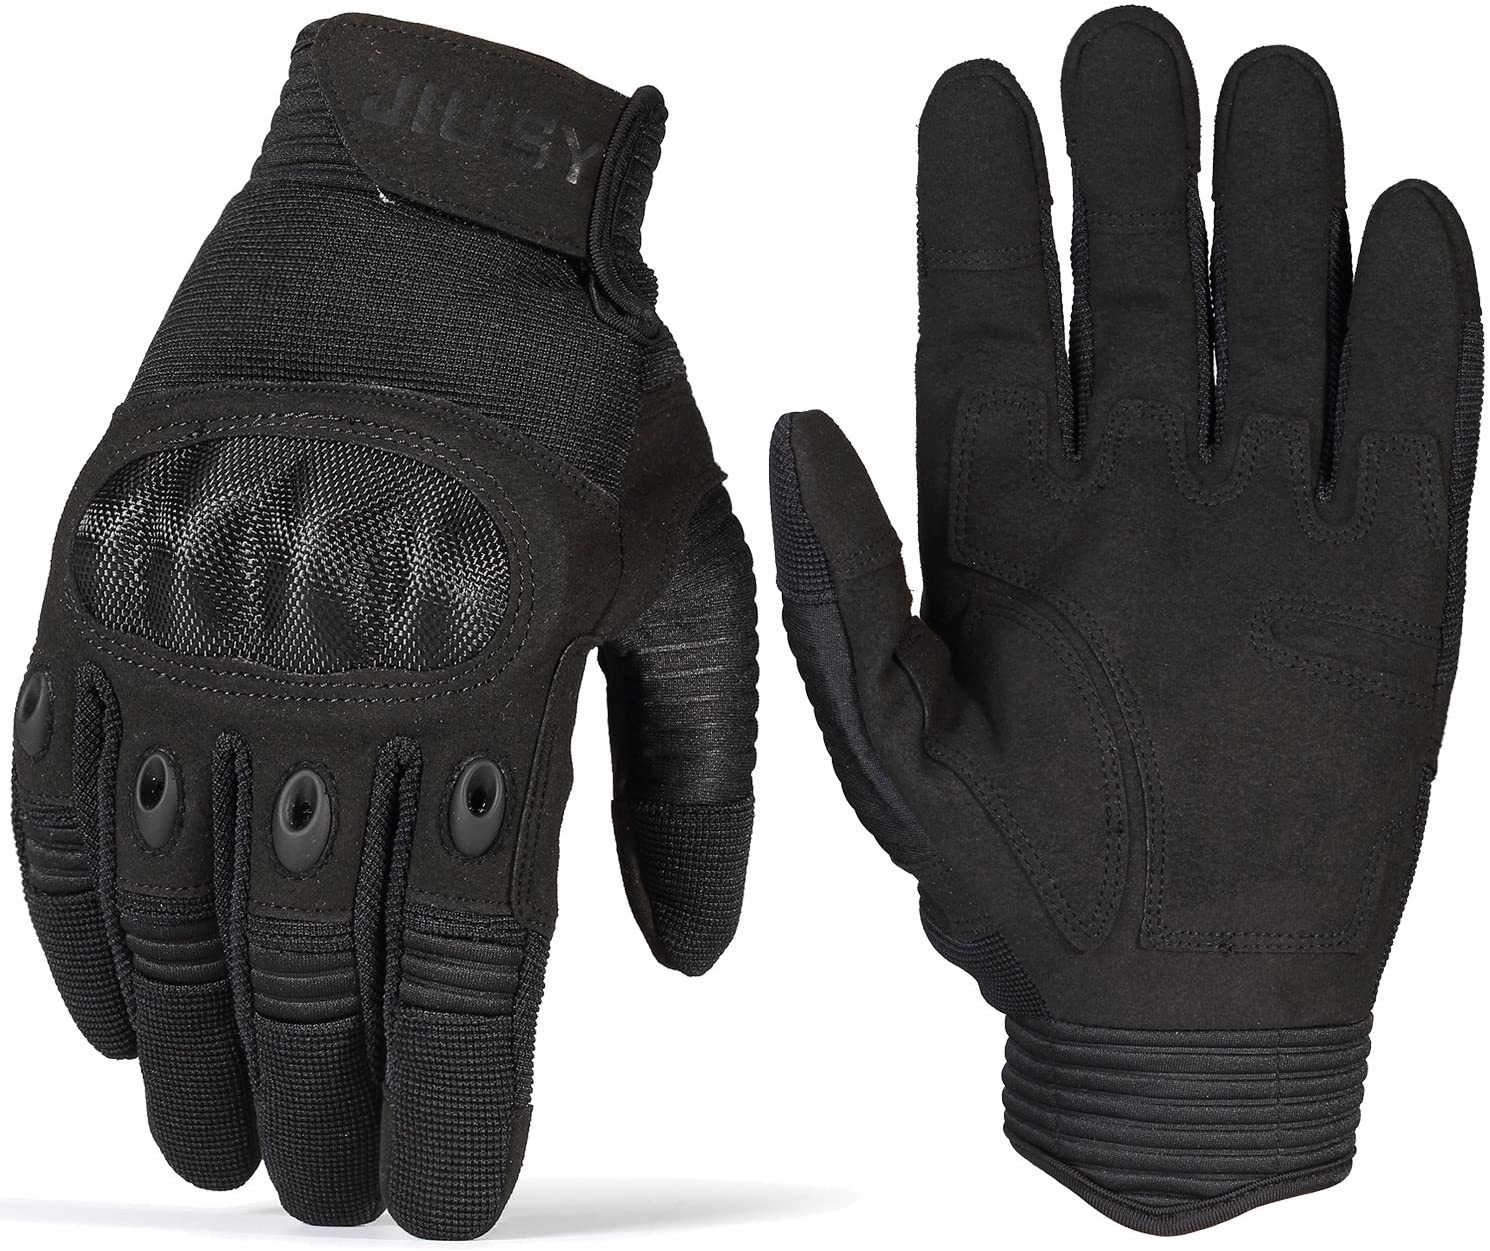 Amazon.com : WTACTFUL Tactical Gloves Full Finger Gloves - Airsoft Paintball Military (Touchscreen) : Sports & Outdoors